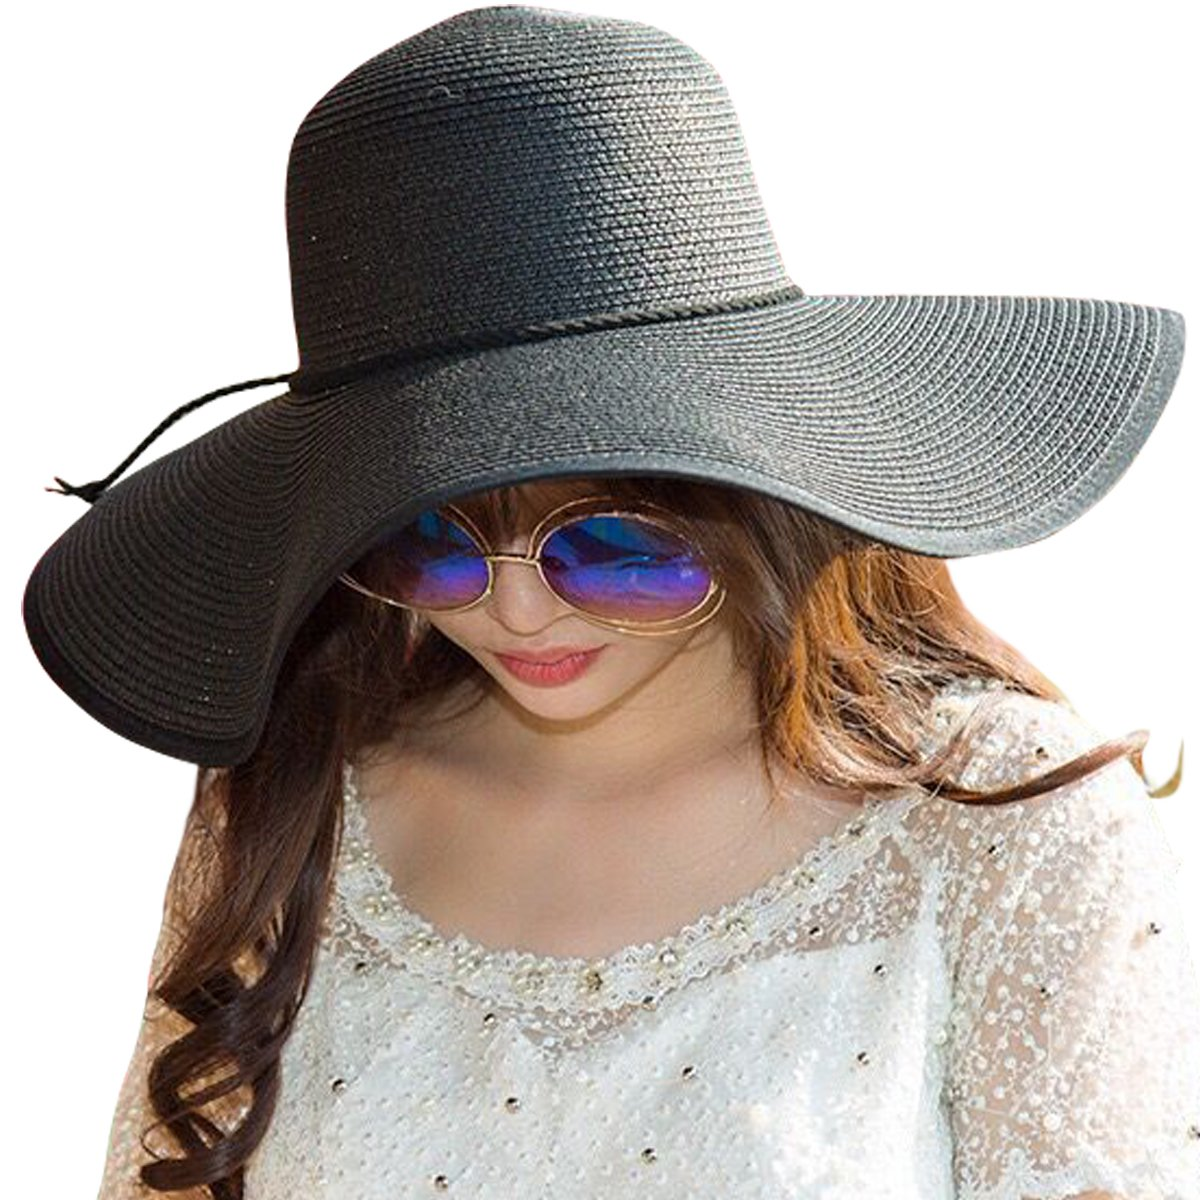 8fafcb9acaa6c7 Home / Clothing, Shoes and Jewelry / JOYEBUY Women Big Bowknot Straw Hat  Floppy Foldable Roll up UV Protection Beach Cap Sun Hat